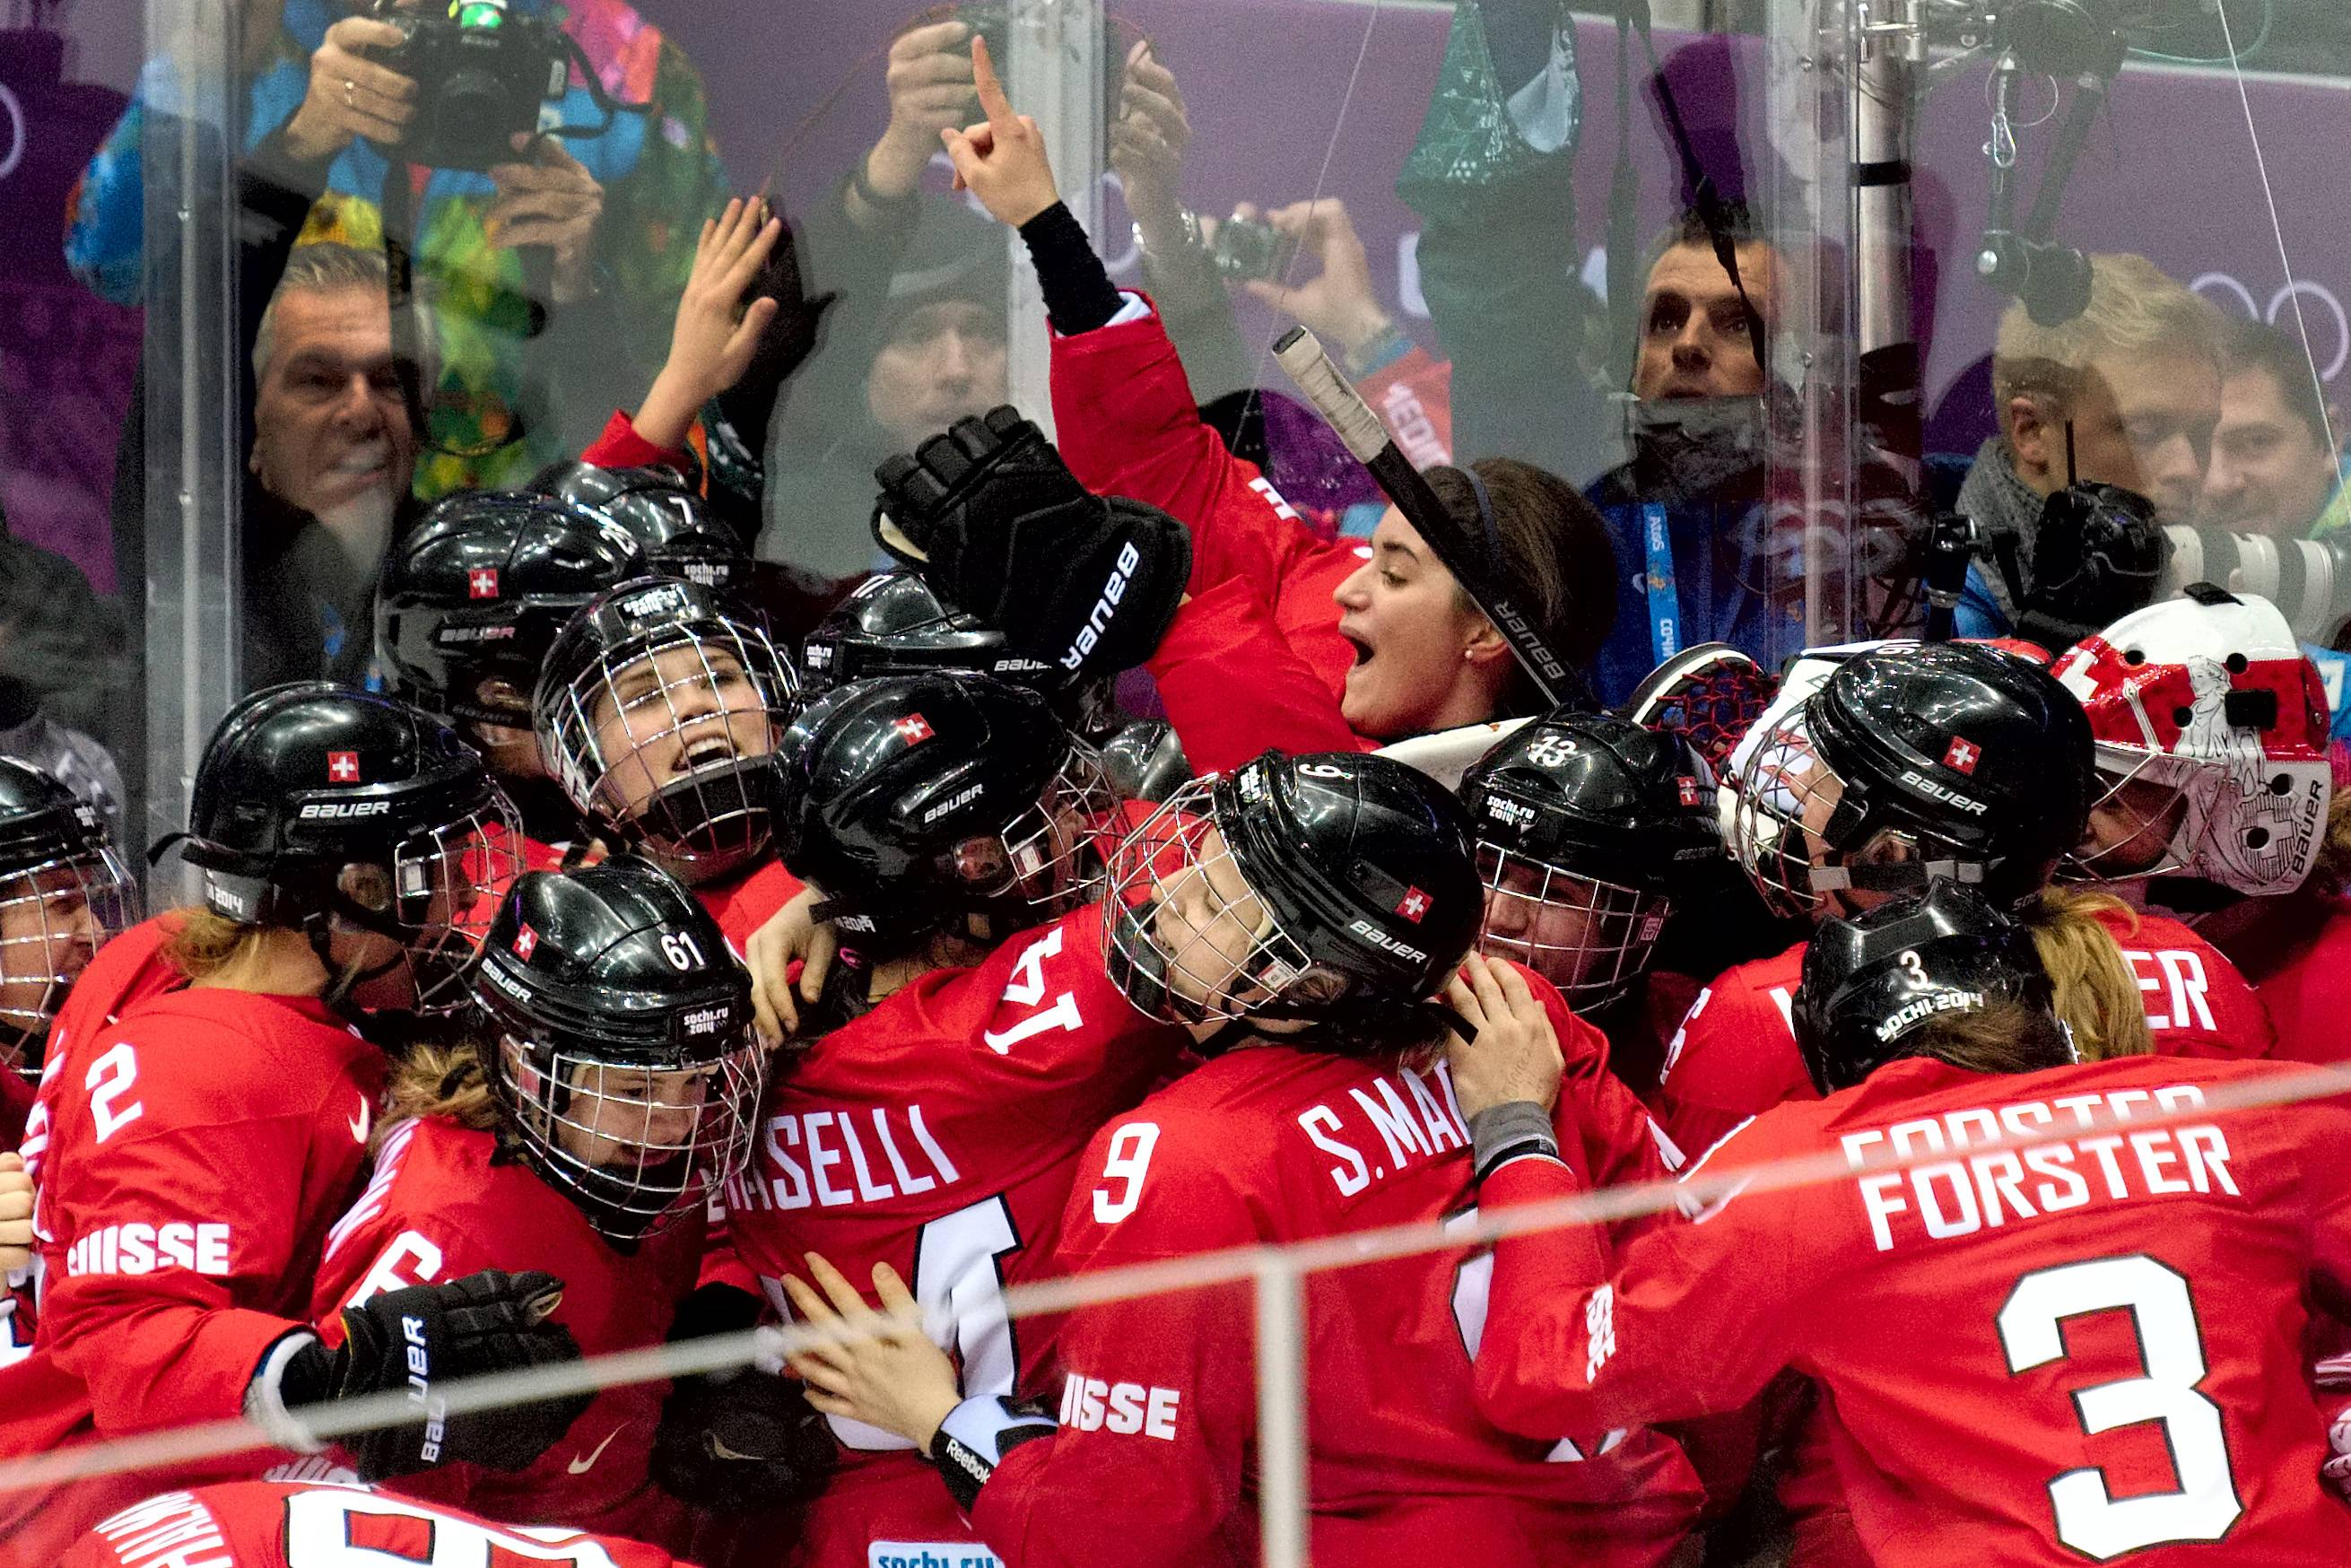 Team Switzerland celebrates their 4-3 win over Sweden in the women's ice hockey bronze medal game at Bolshoy Arena at the 2014 Winter Olympics, Thursday, Feb. 20, 2014, in Sochi, Russia.